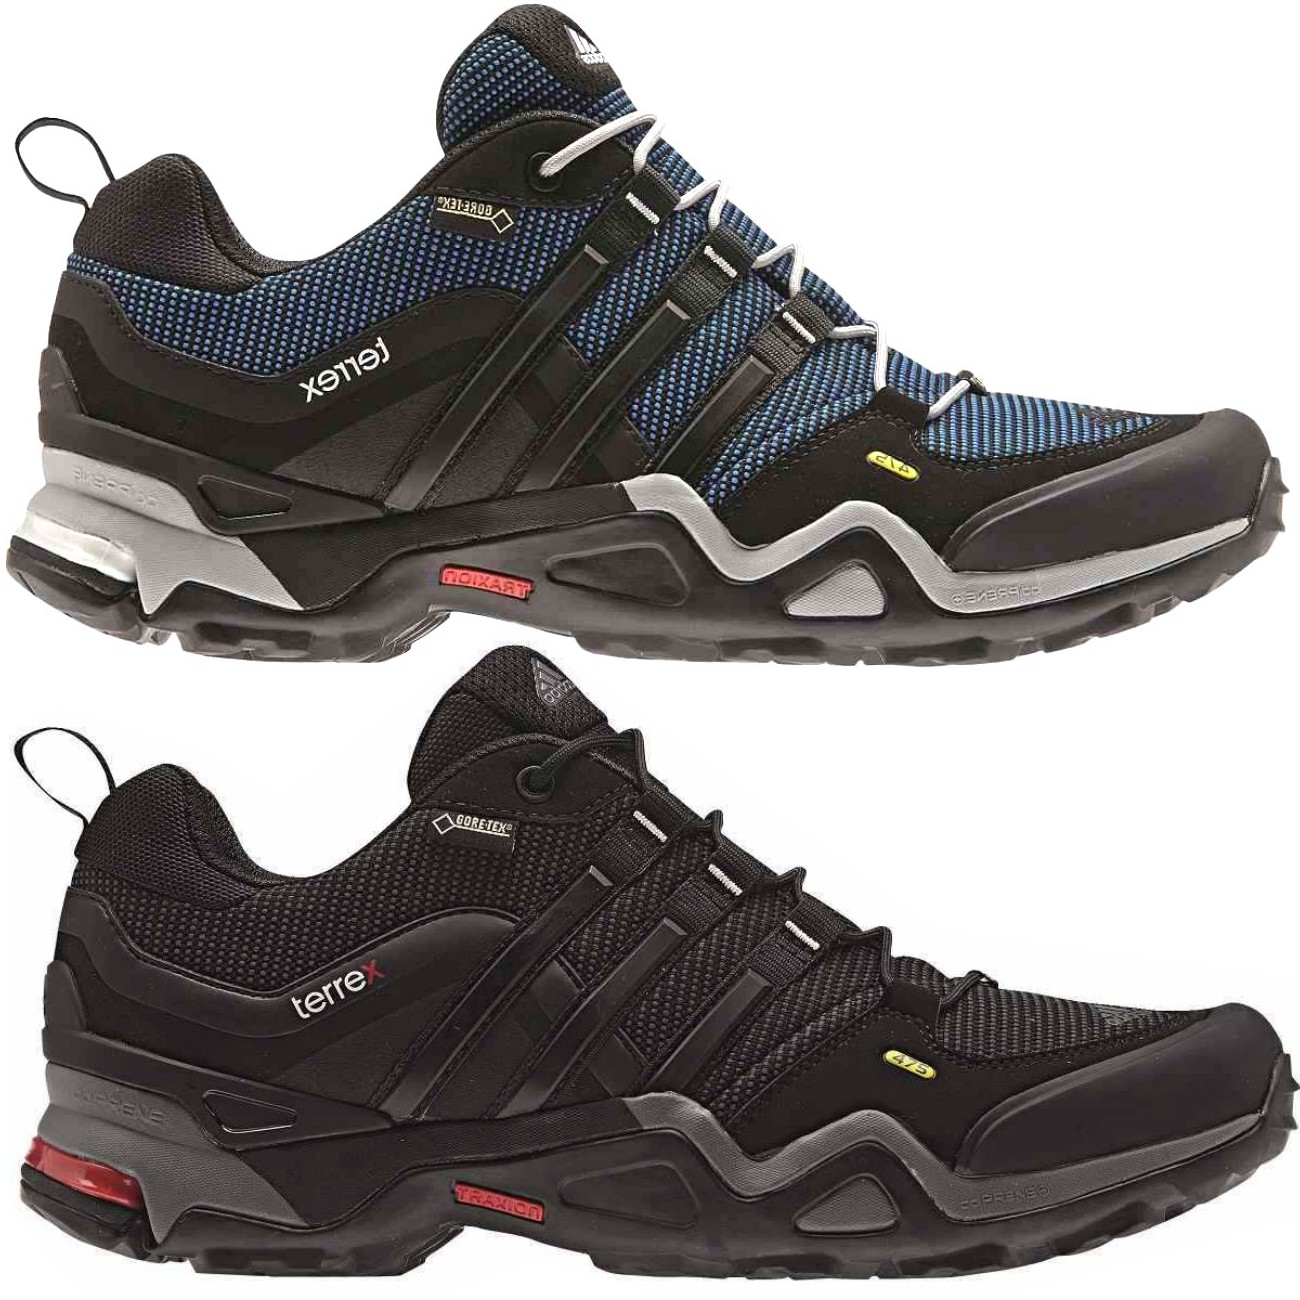 adidas terrex fast x gtx gore tex schuhe wanderschuhe. Black Bedroom Furniture Sets. Home Design Ideas